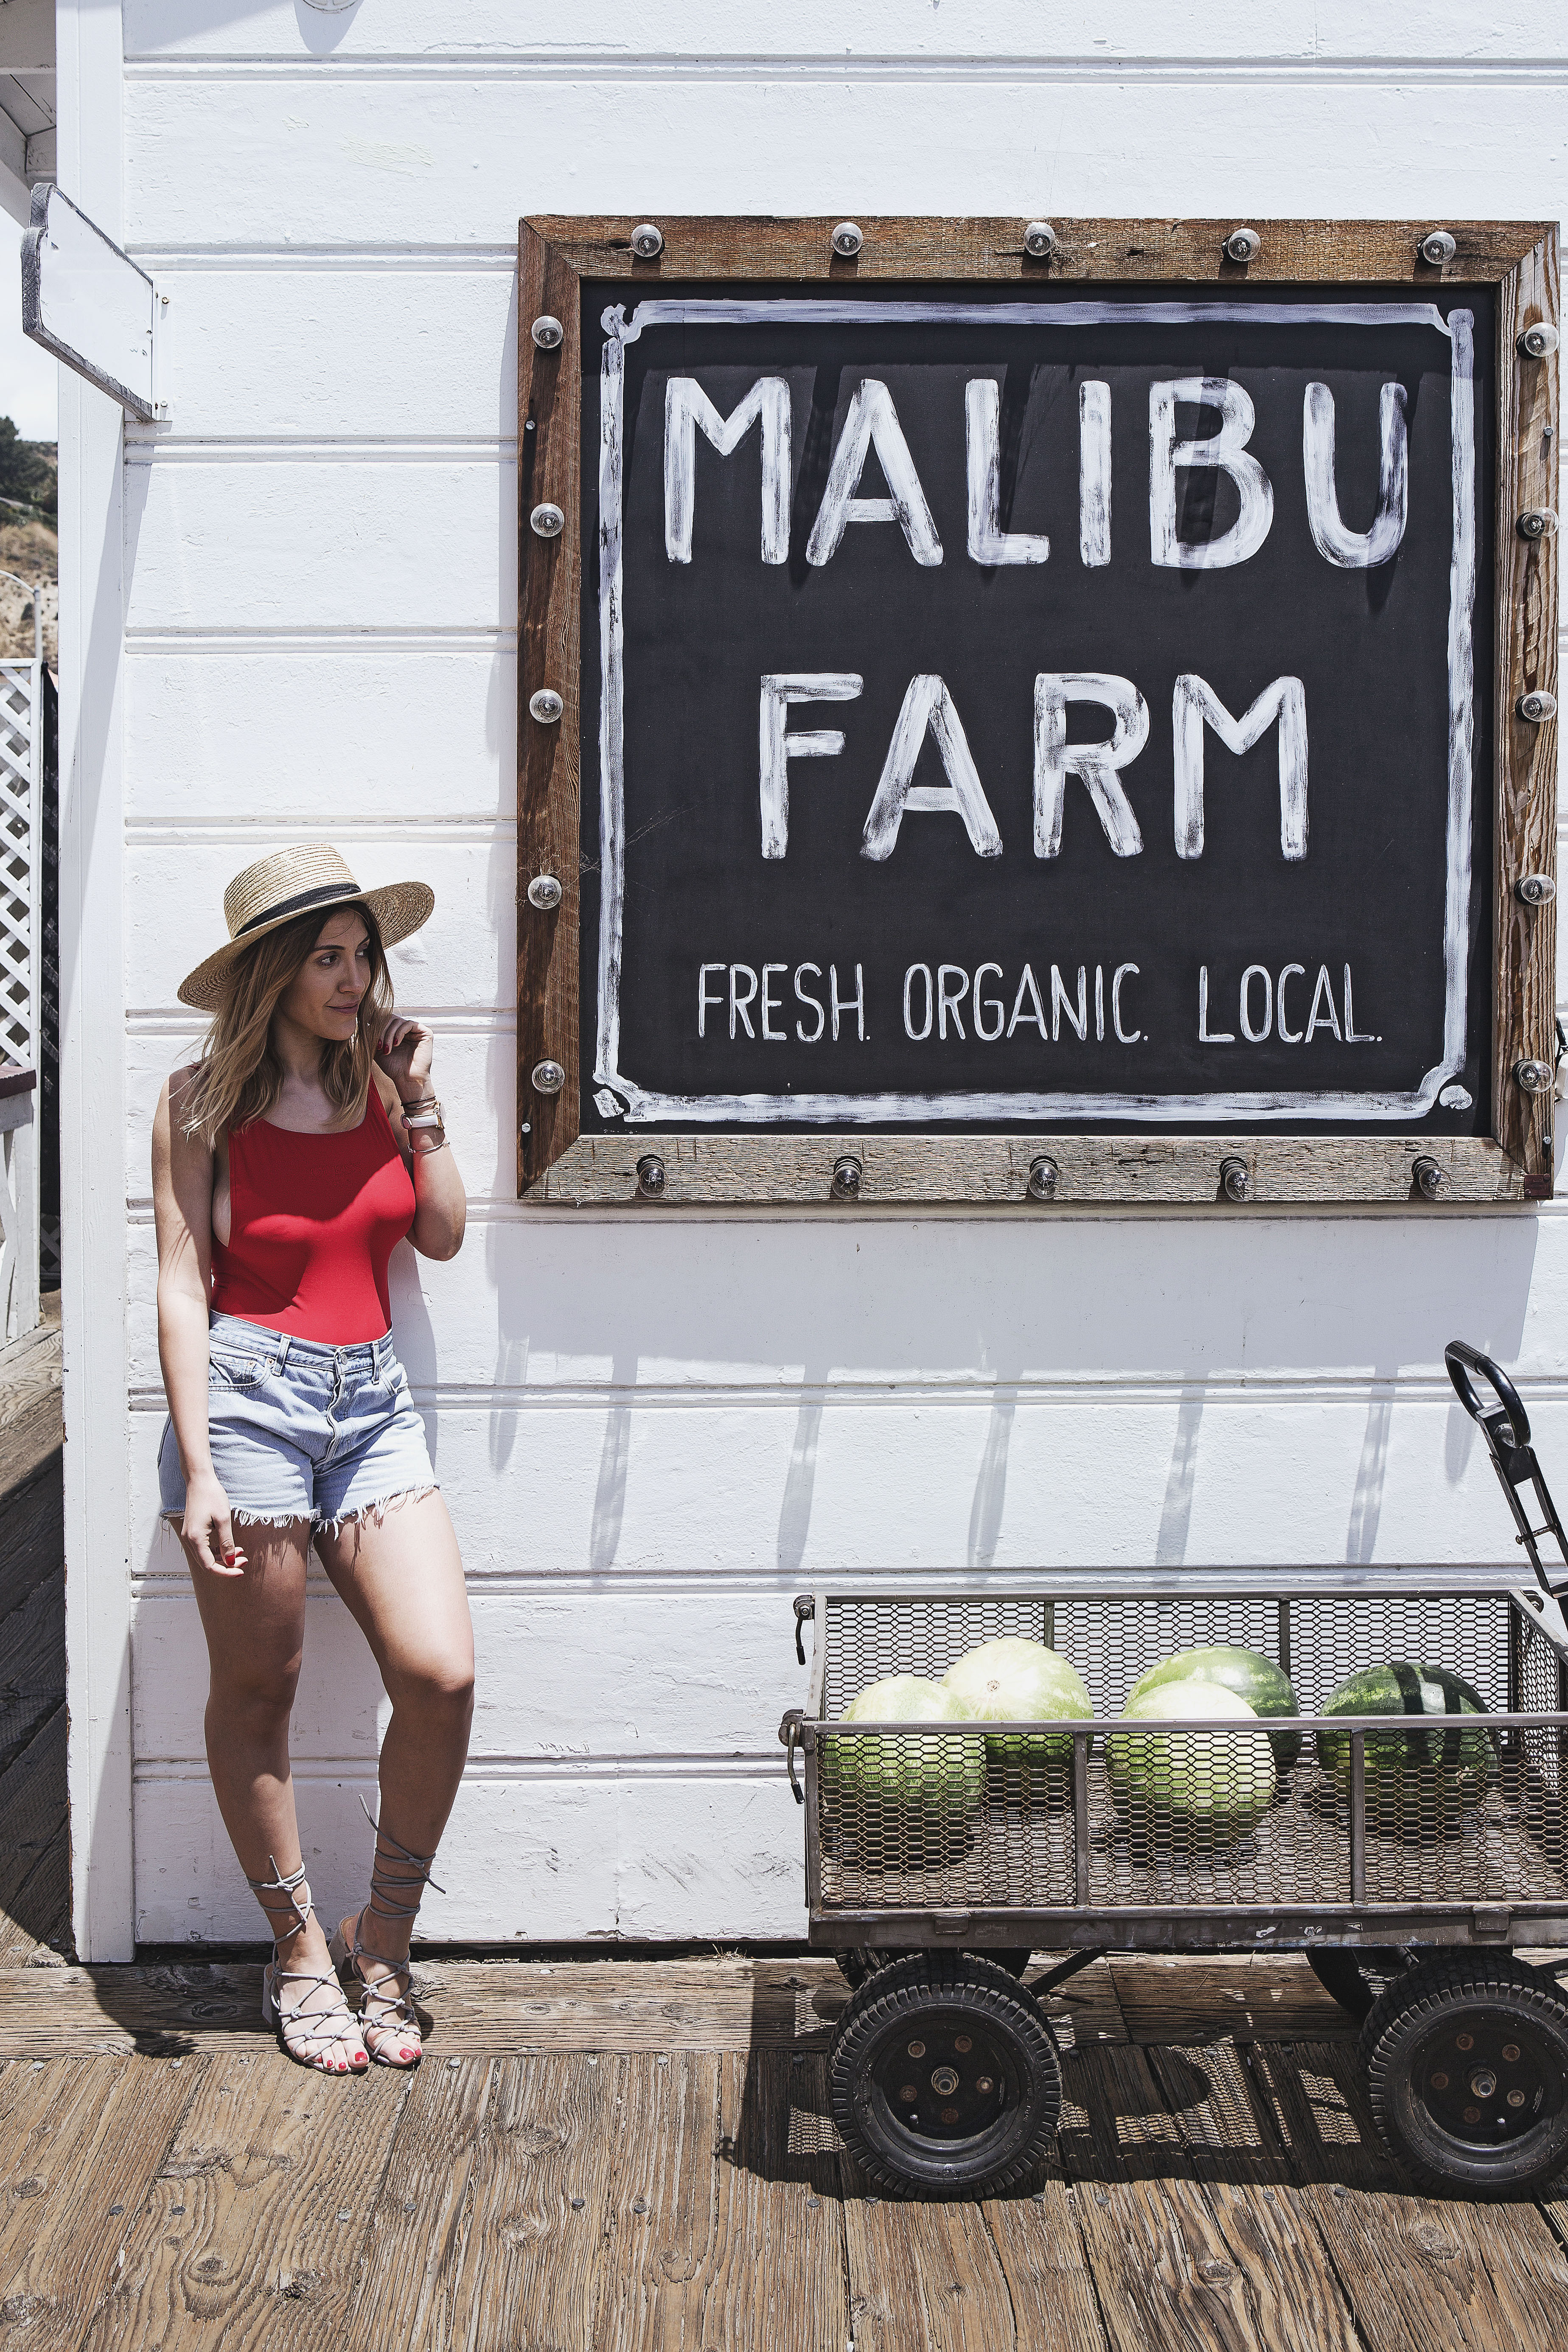 How to Spend a Day in Malibu